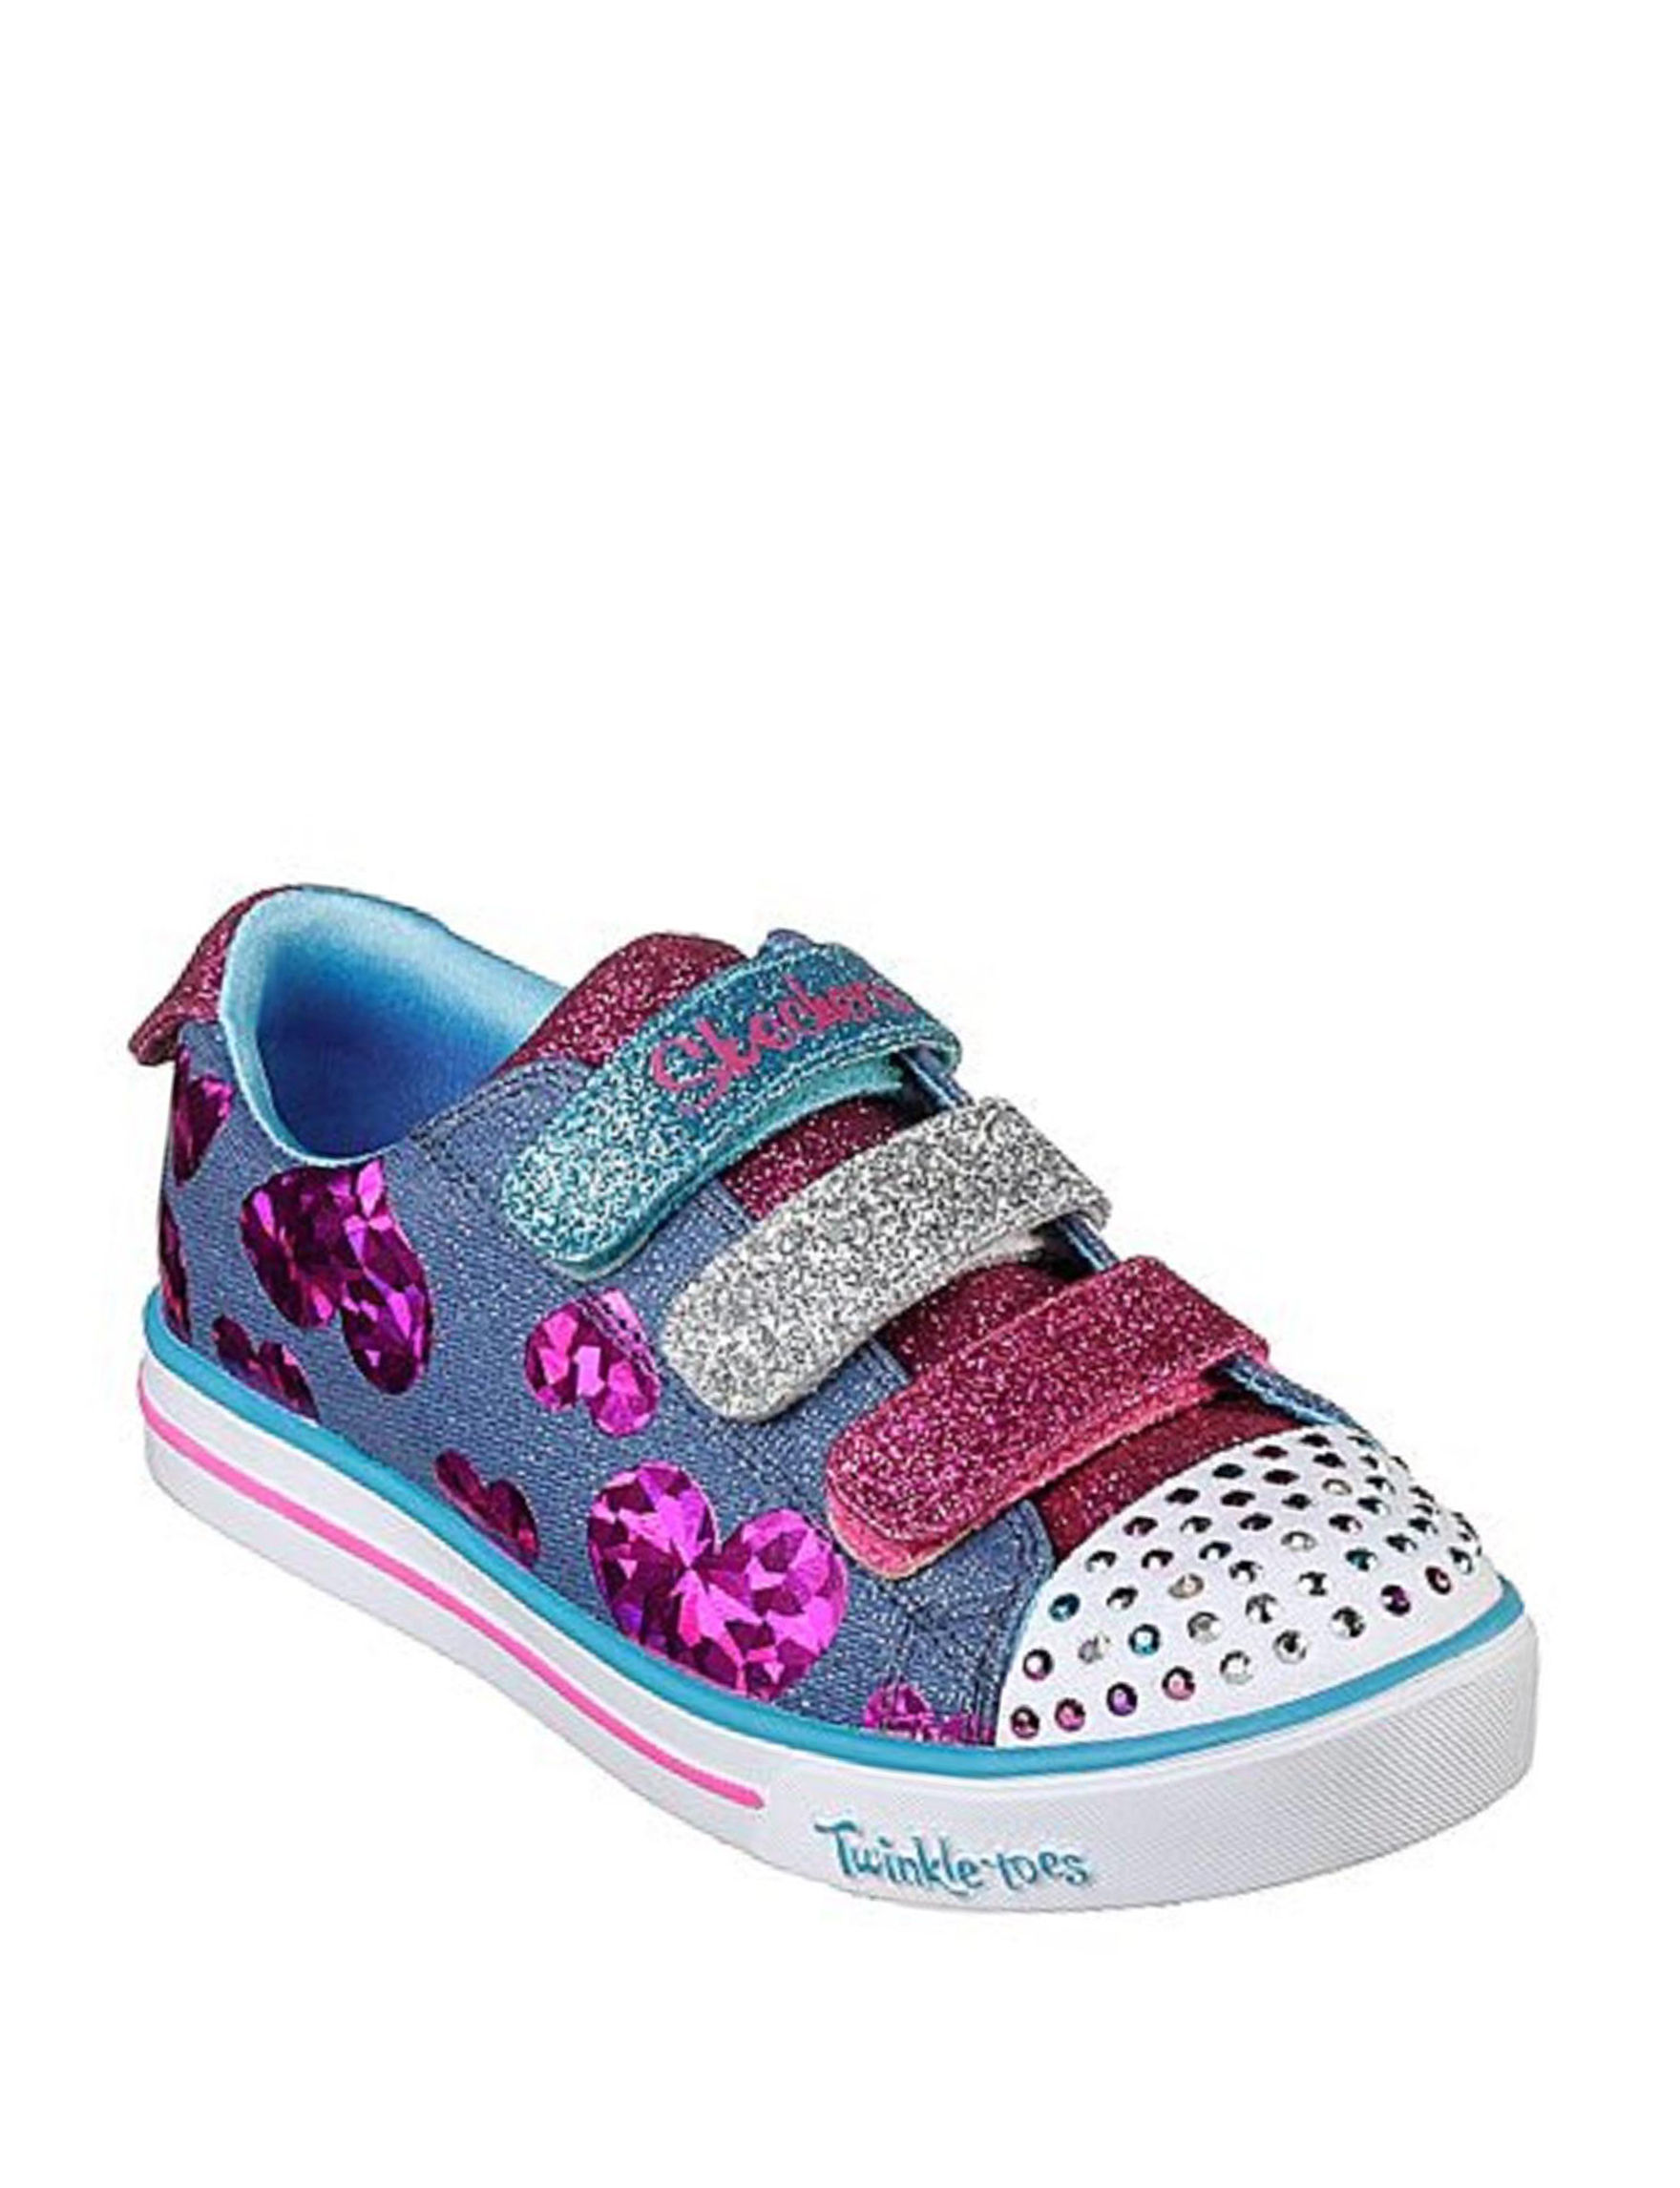 67a3f7ba8366 Skechers Twinkle Toes Sparkle Lite Flutter Fab Light-Up Shoes - Girls 11-3